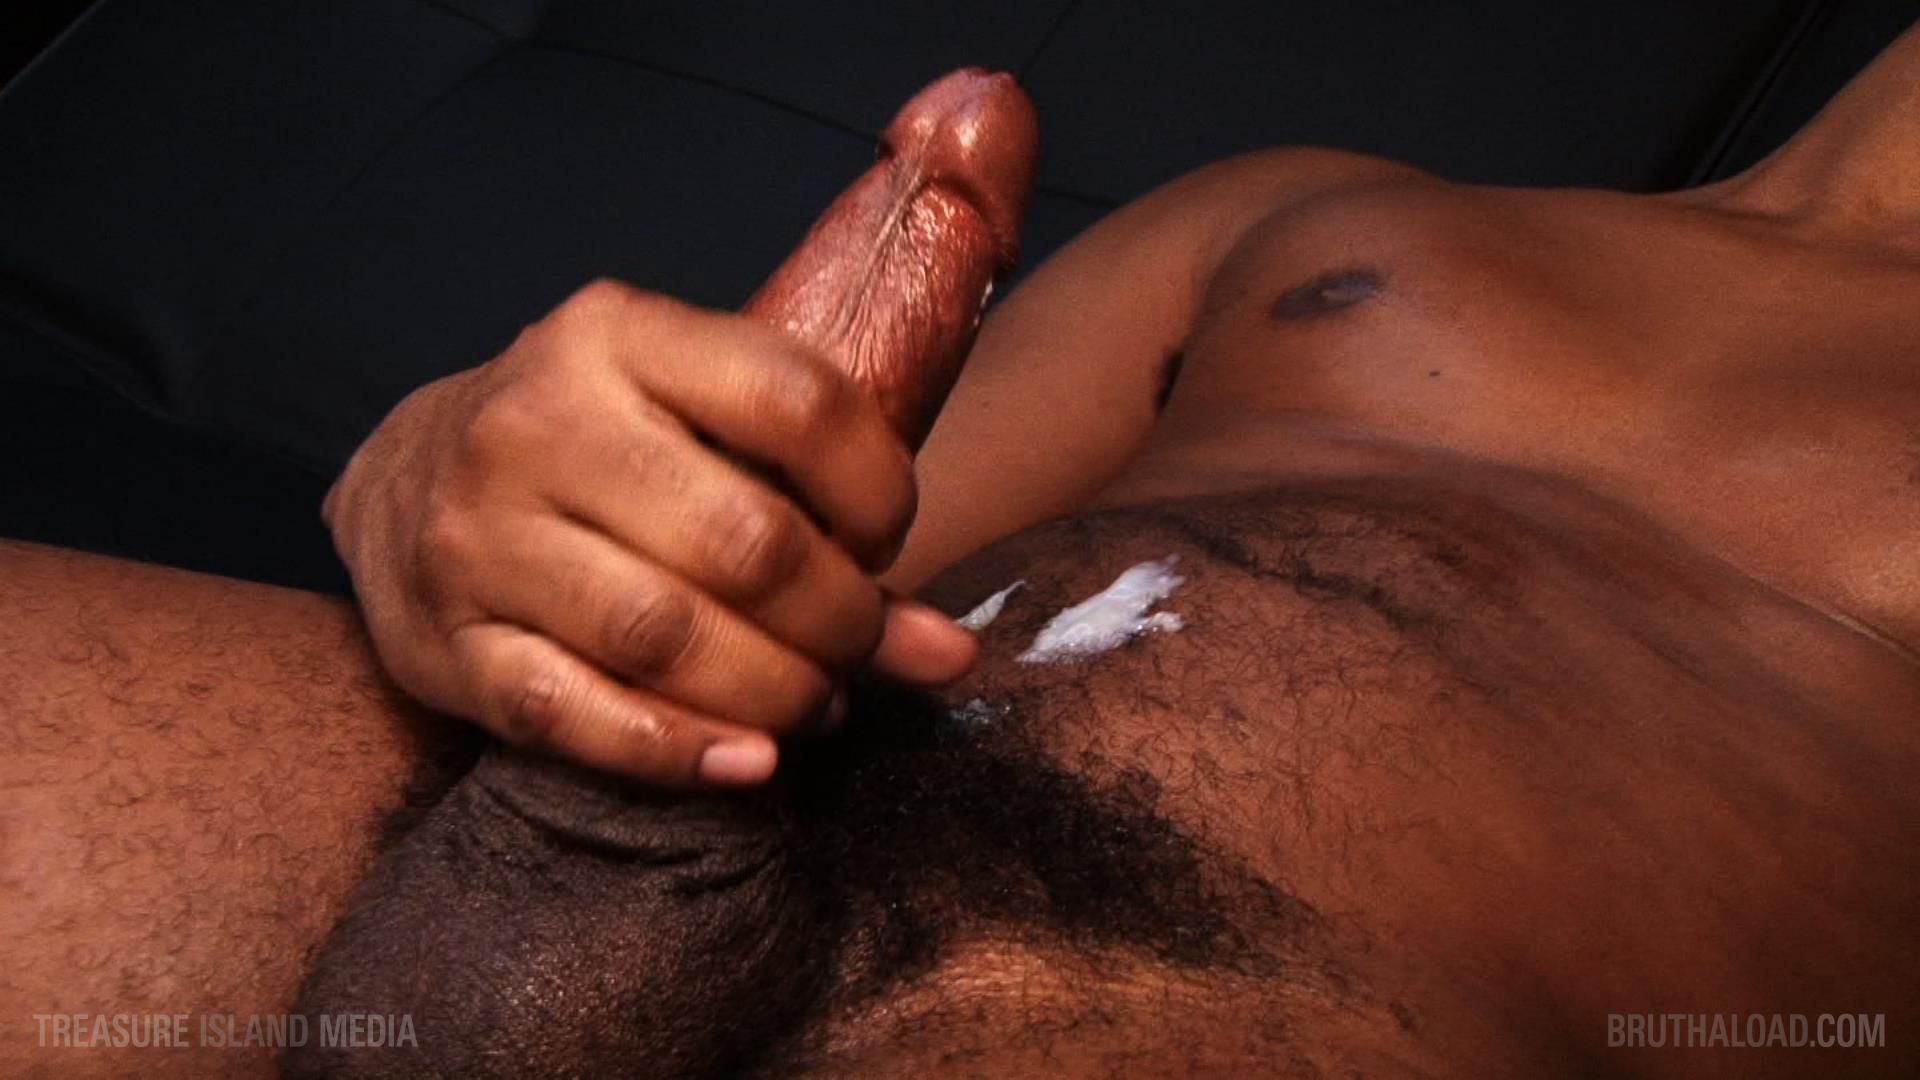 Treasure-Island-Media-Bruthaload-Devin-Masters-Big-Black-Uncut-Cock-23 Treasure Island Media's Bruthaload: Devin Masters Edging His Big Black Uncut Cock